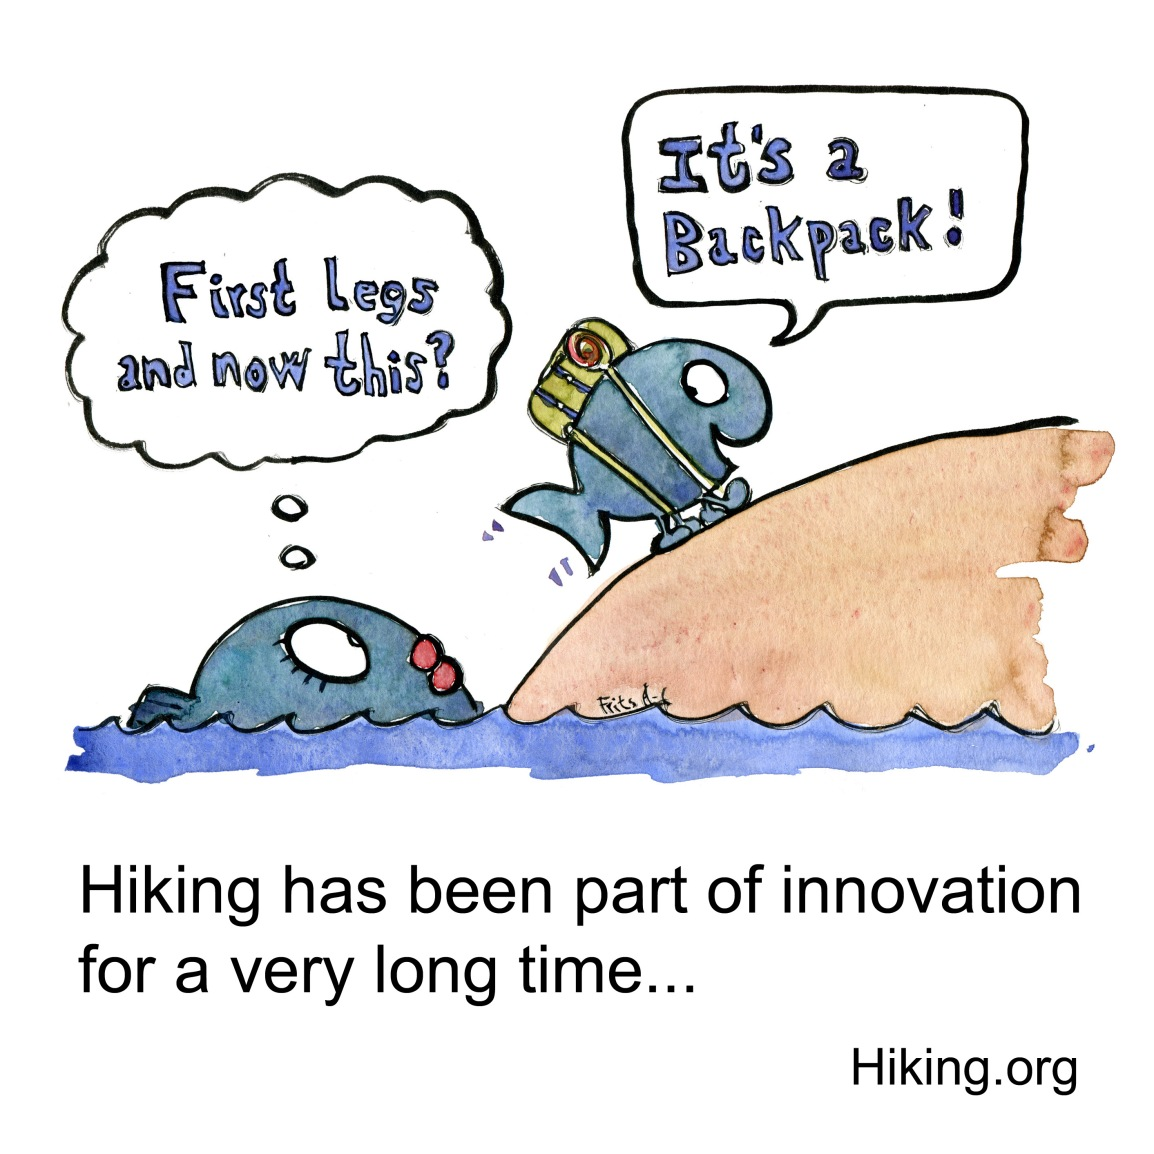 Hiking and innovation through evolution